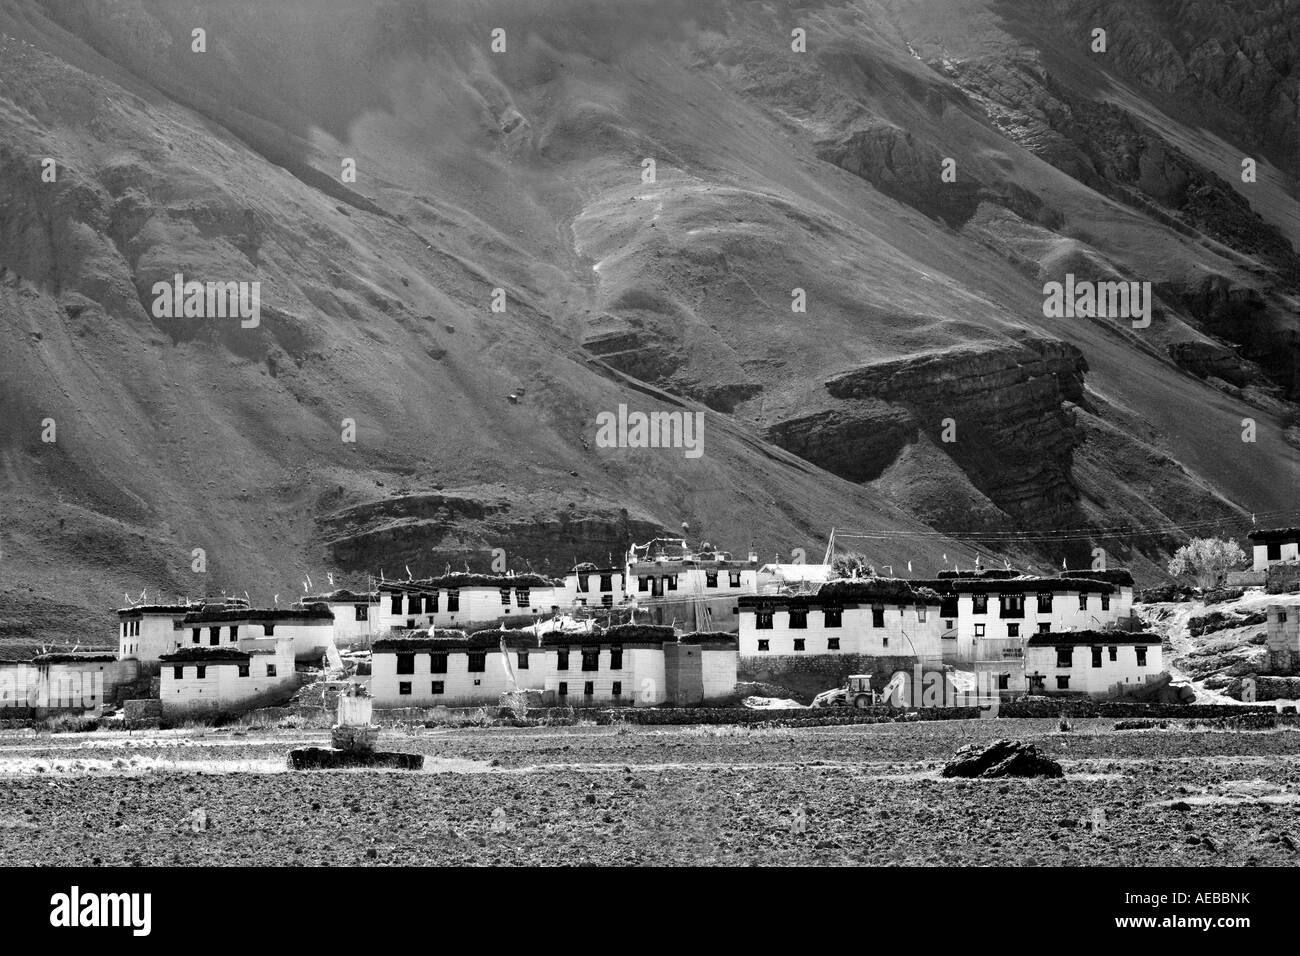 Pictorial View of village Losar in Spiti Valley, Kaza Himachal Pradesh India Stock Photo